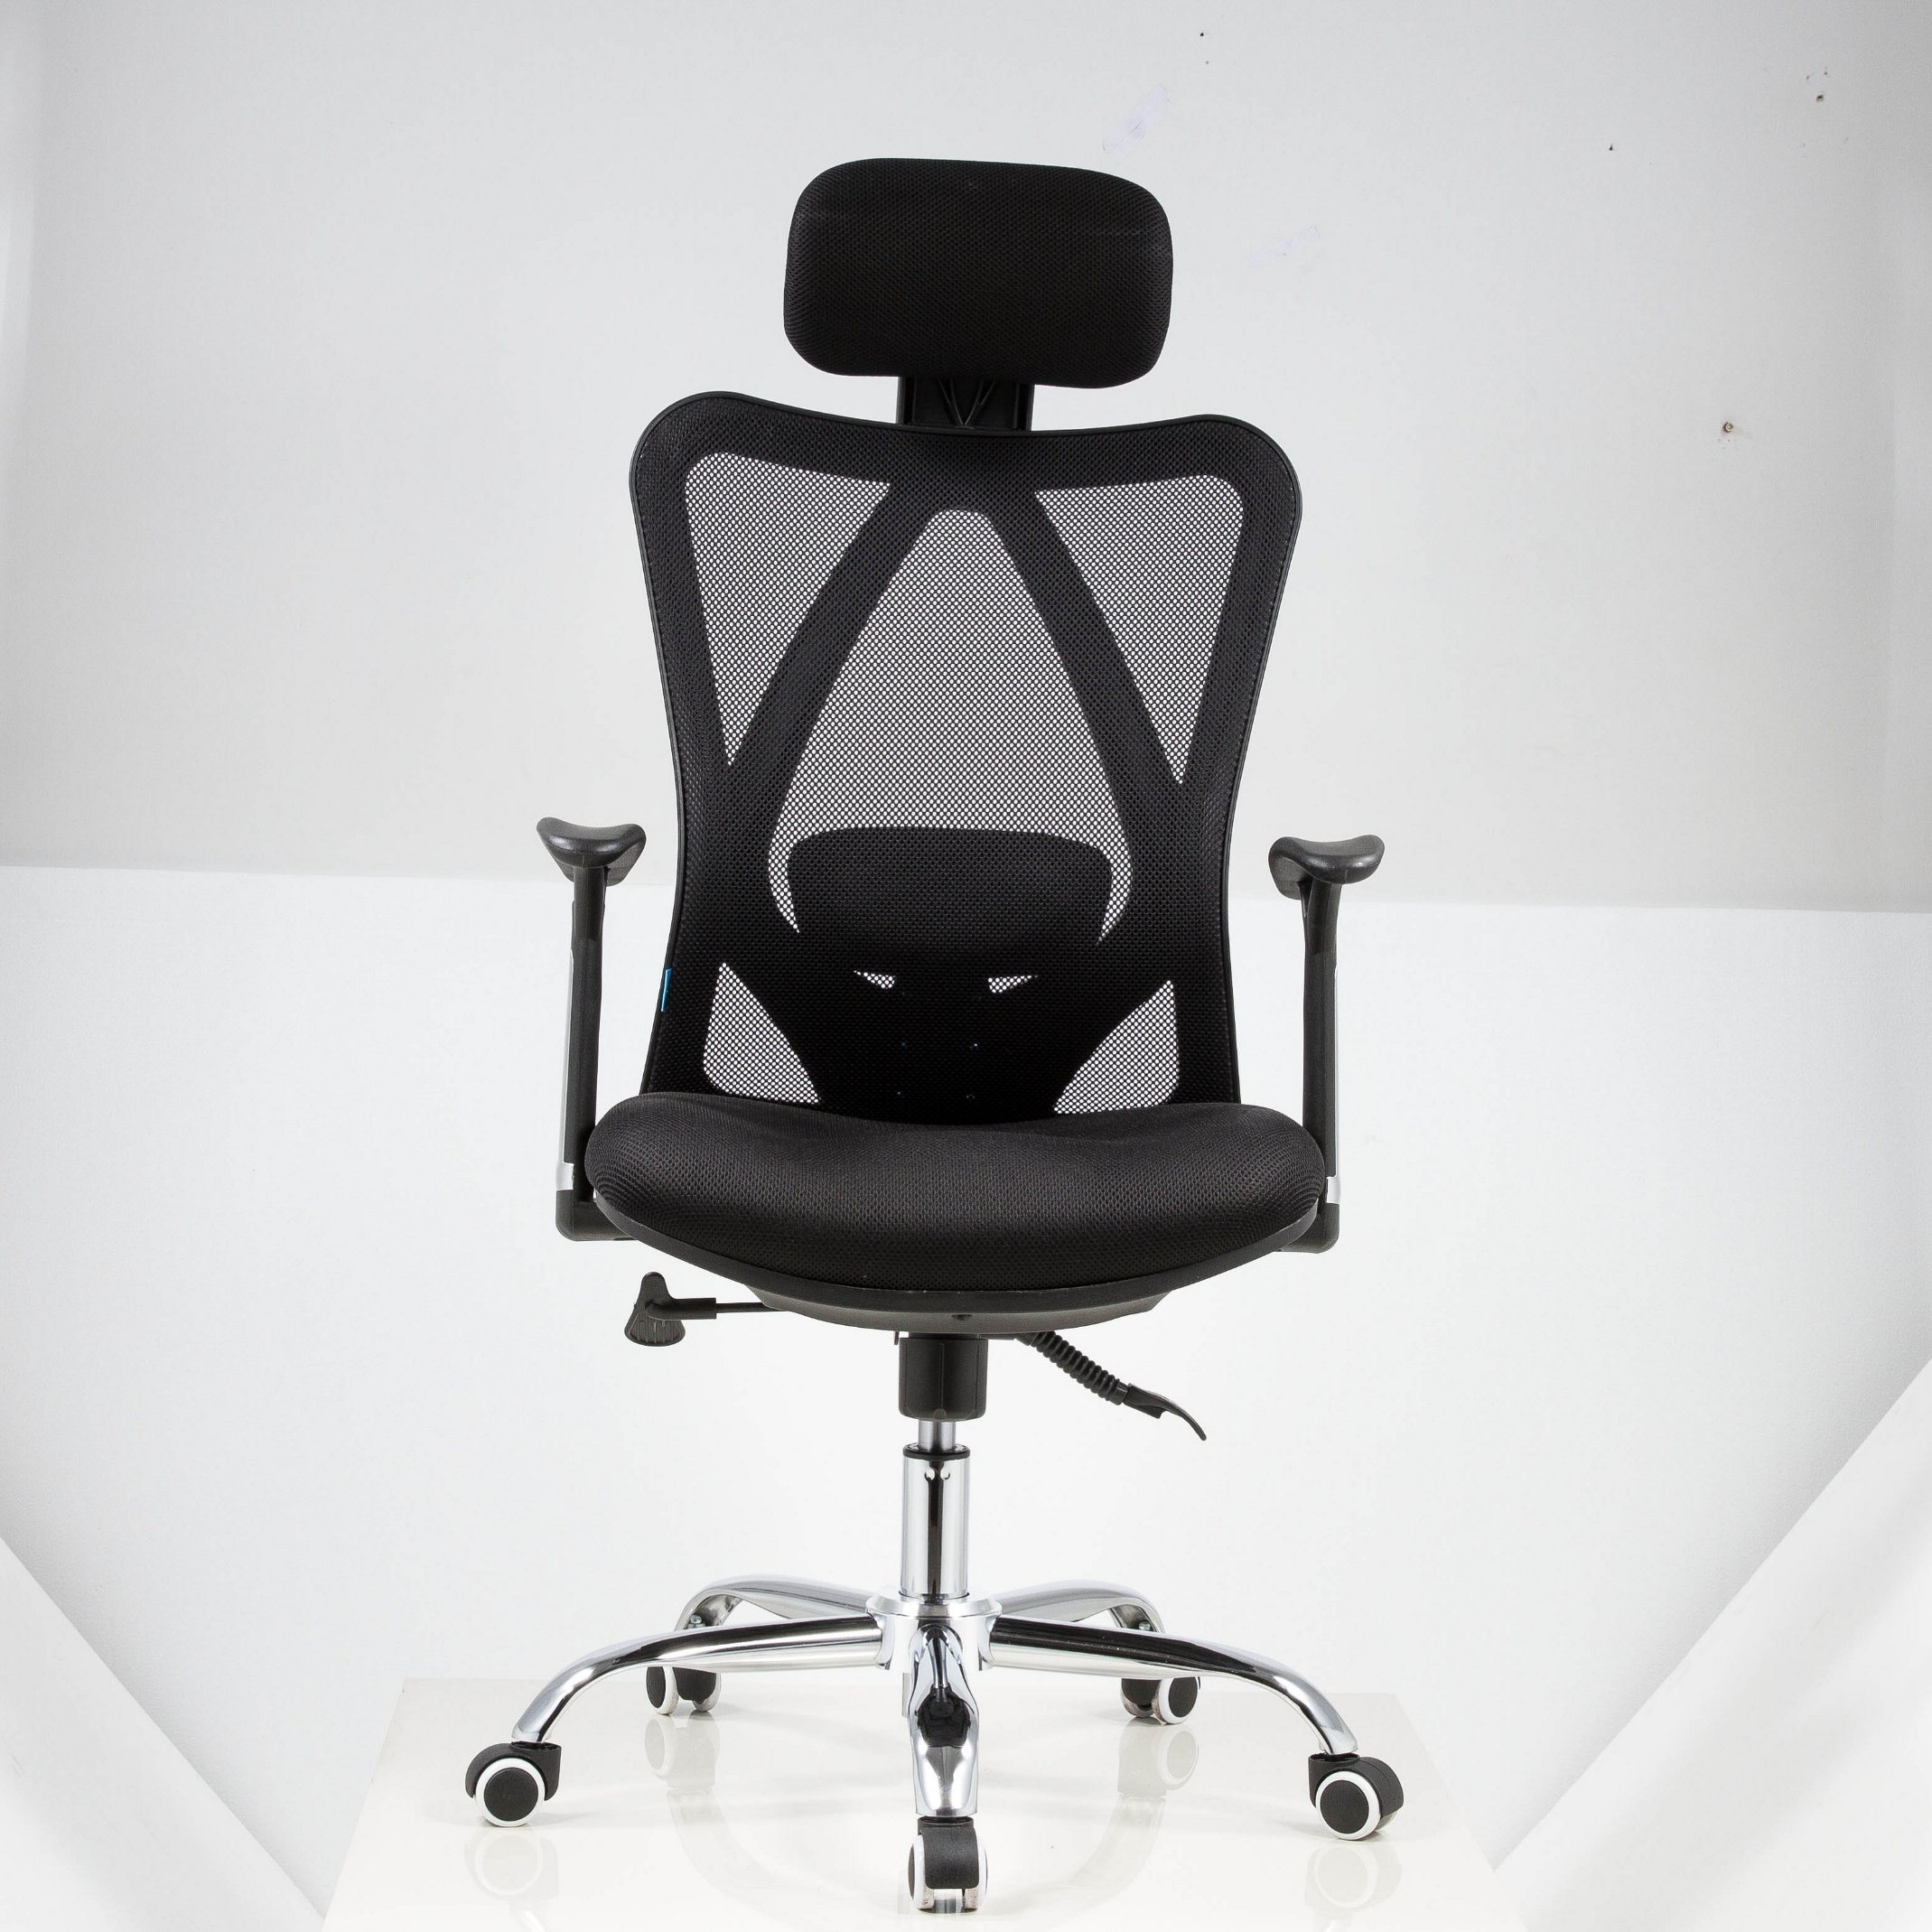 Hot Item Locking Tilt Mechanism Arm Computer Office Chairs Without Wheels